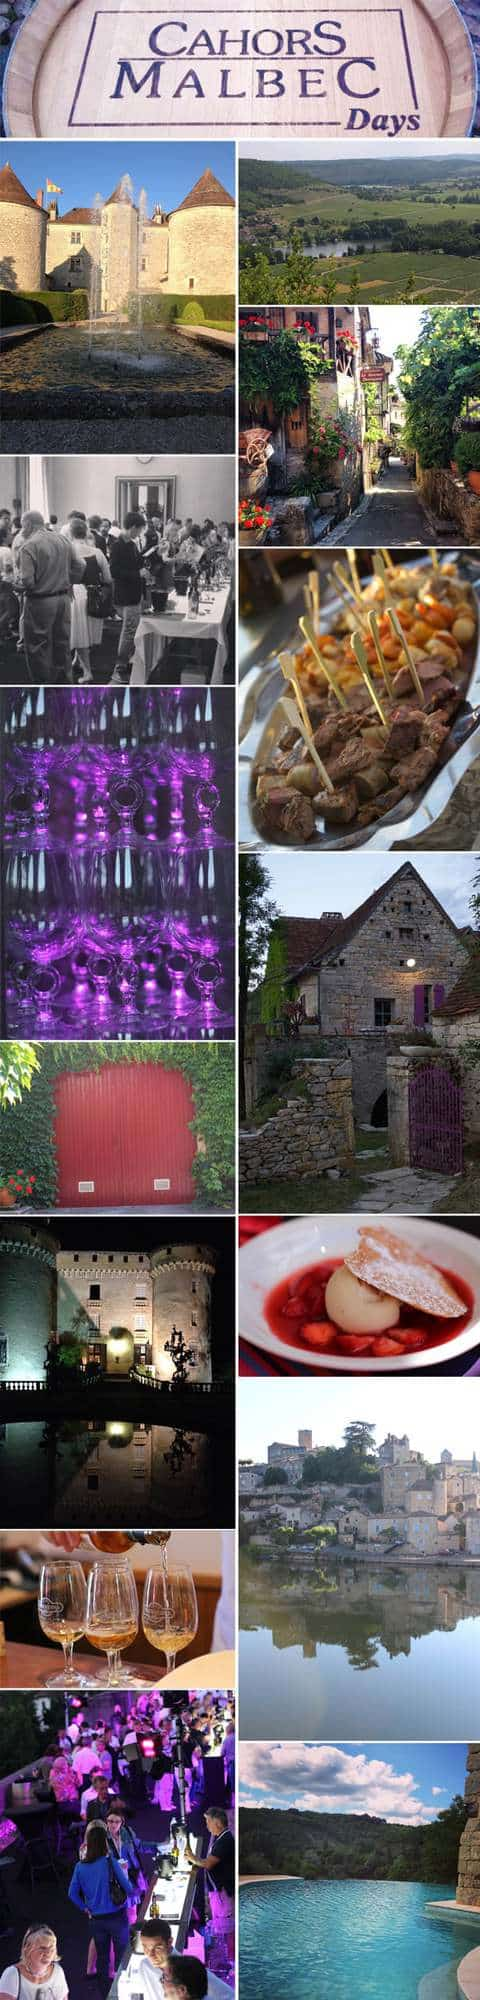 Cahors Photo Collage